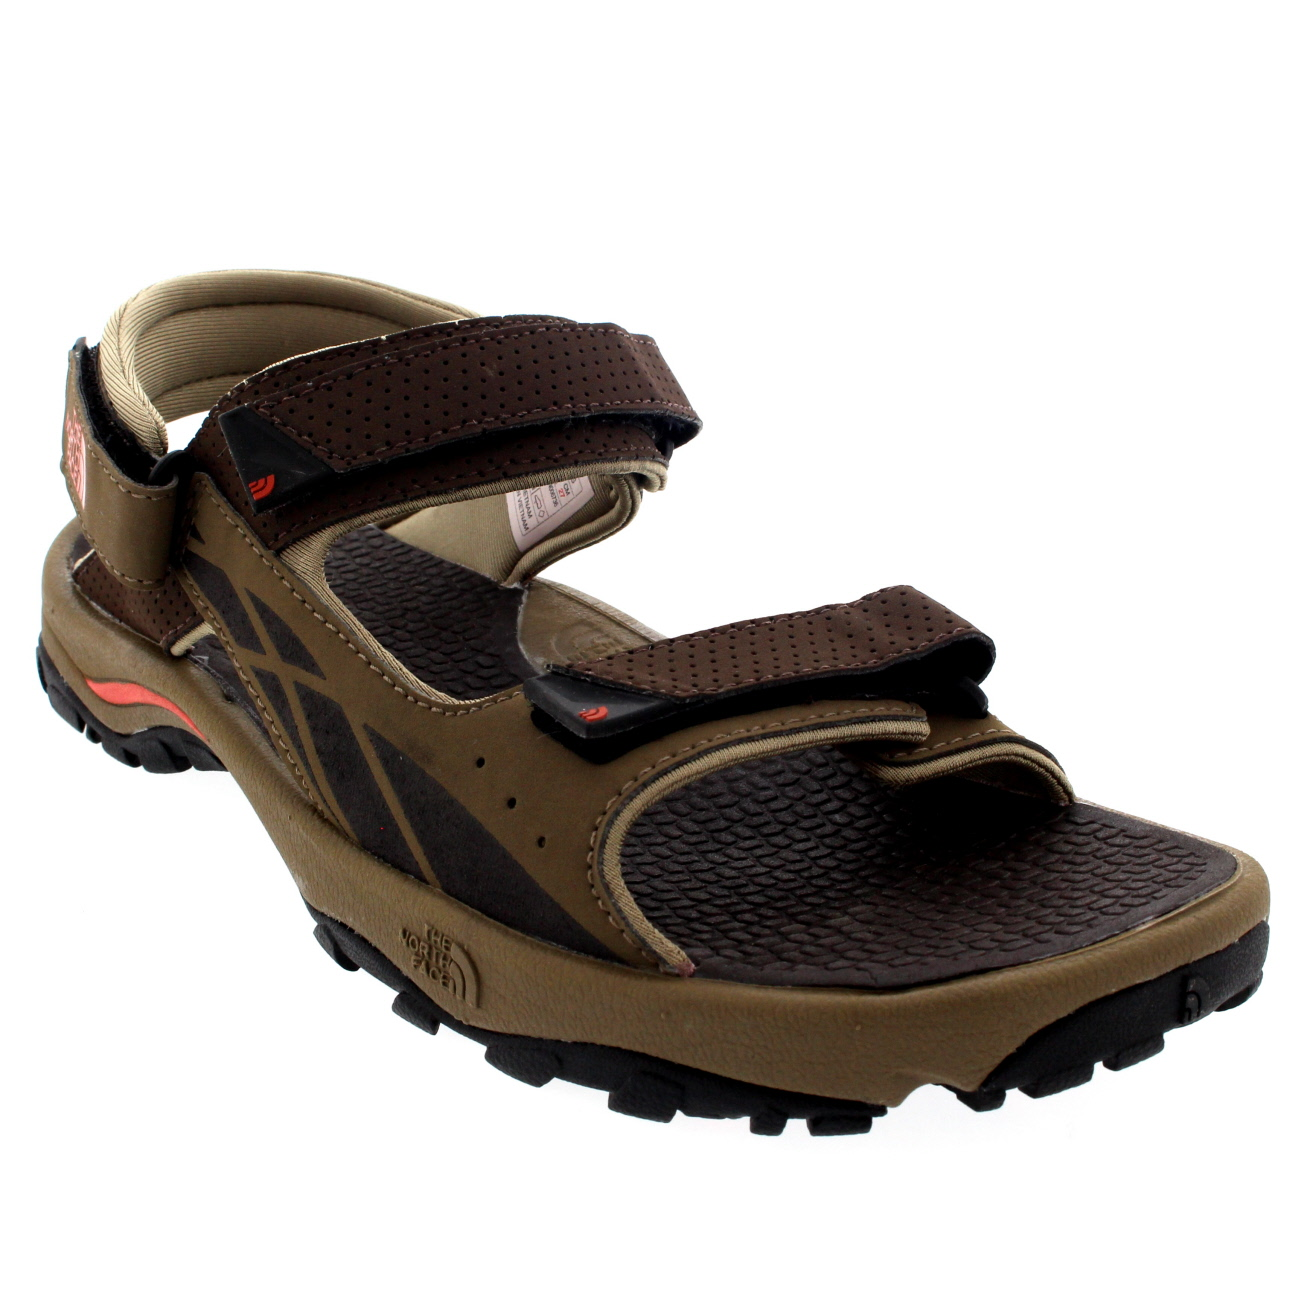 The North Face Storm Sandal Nubuck